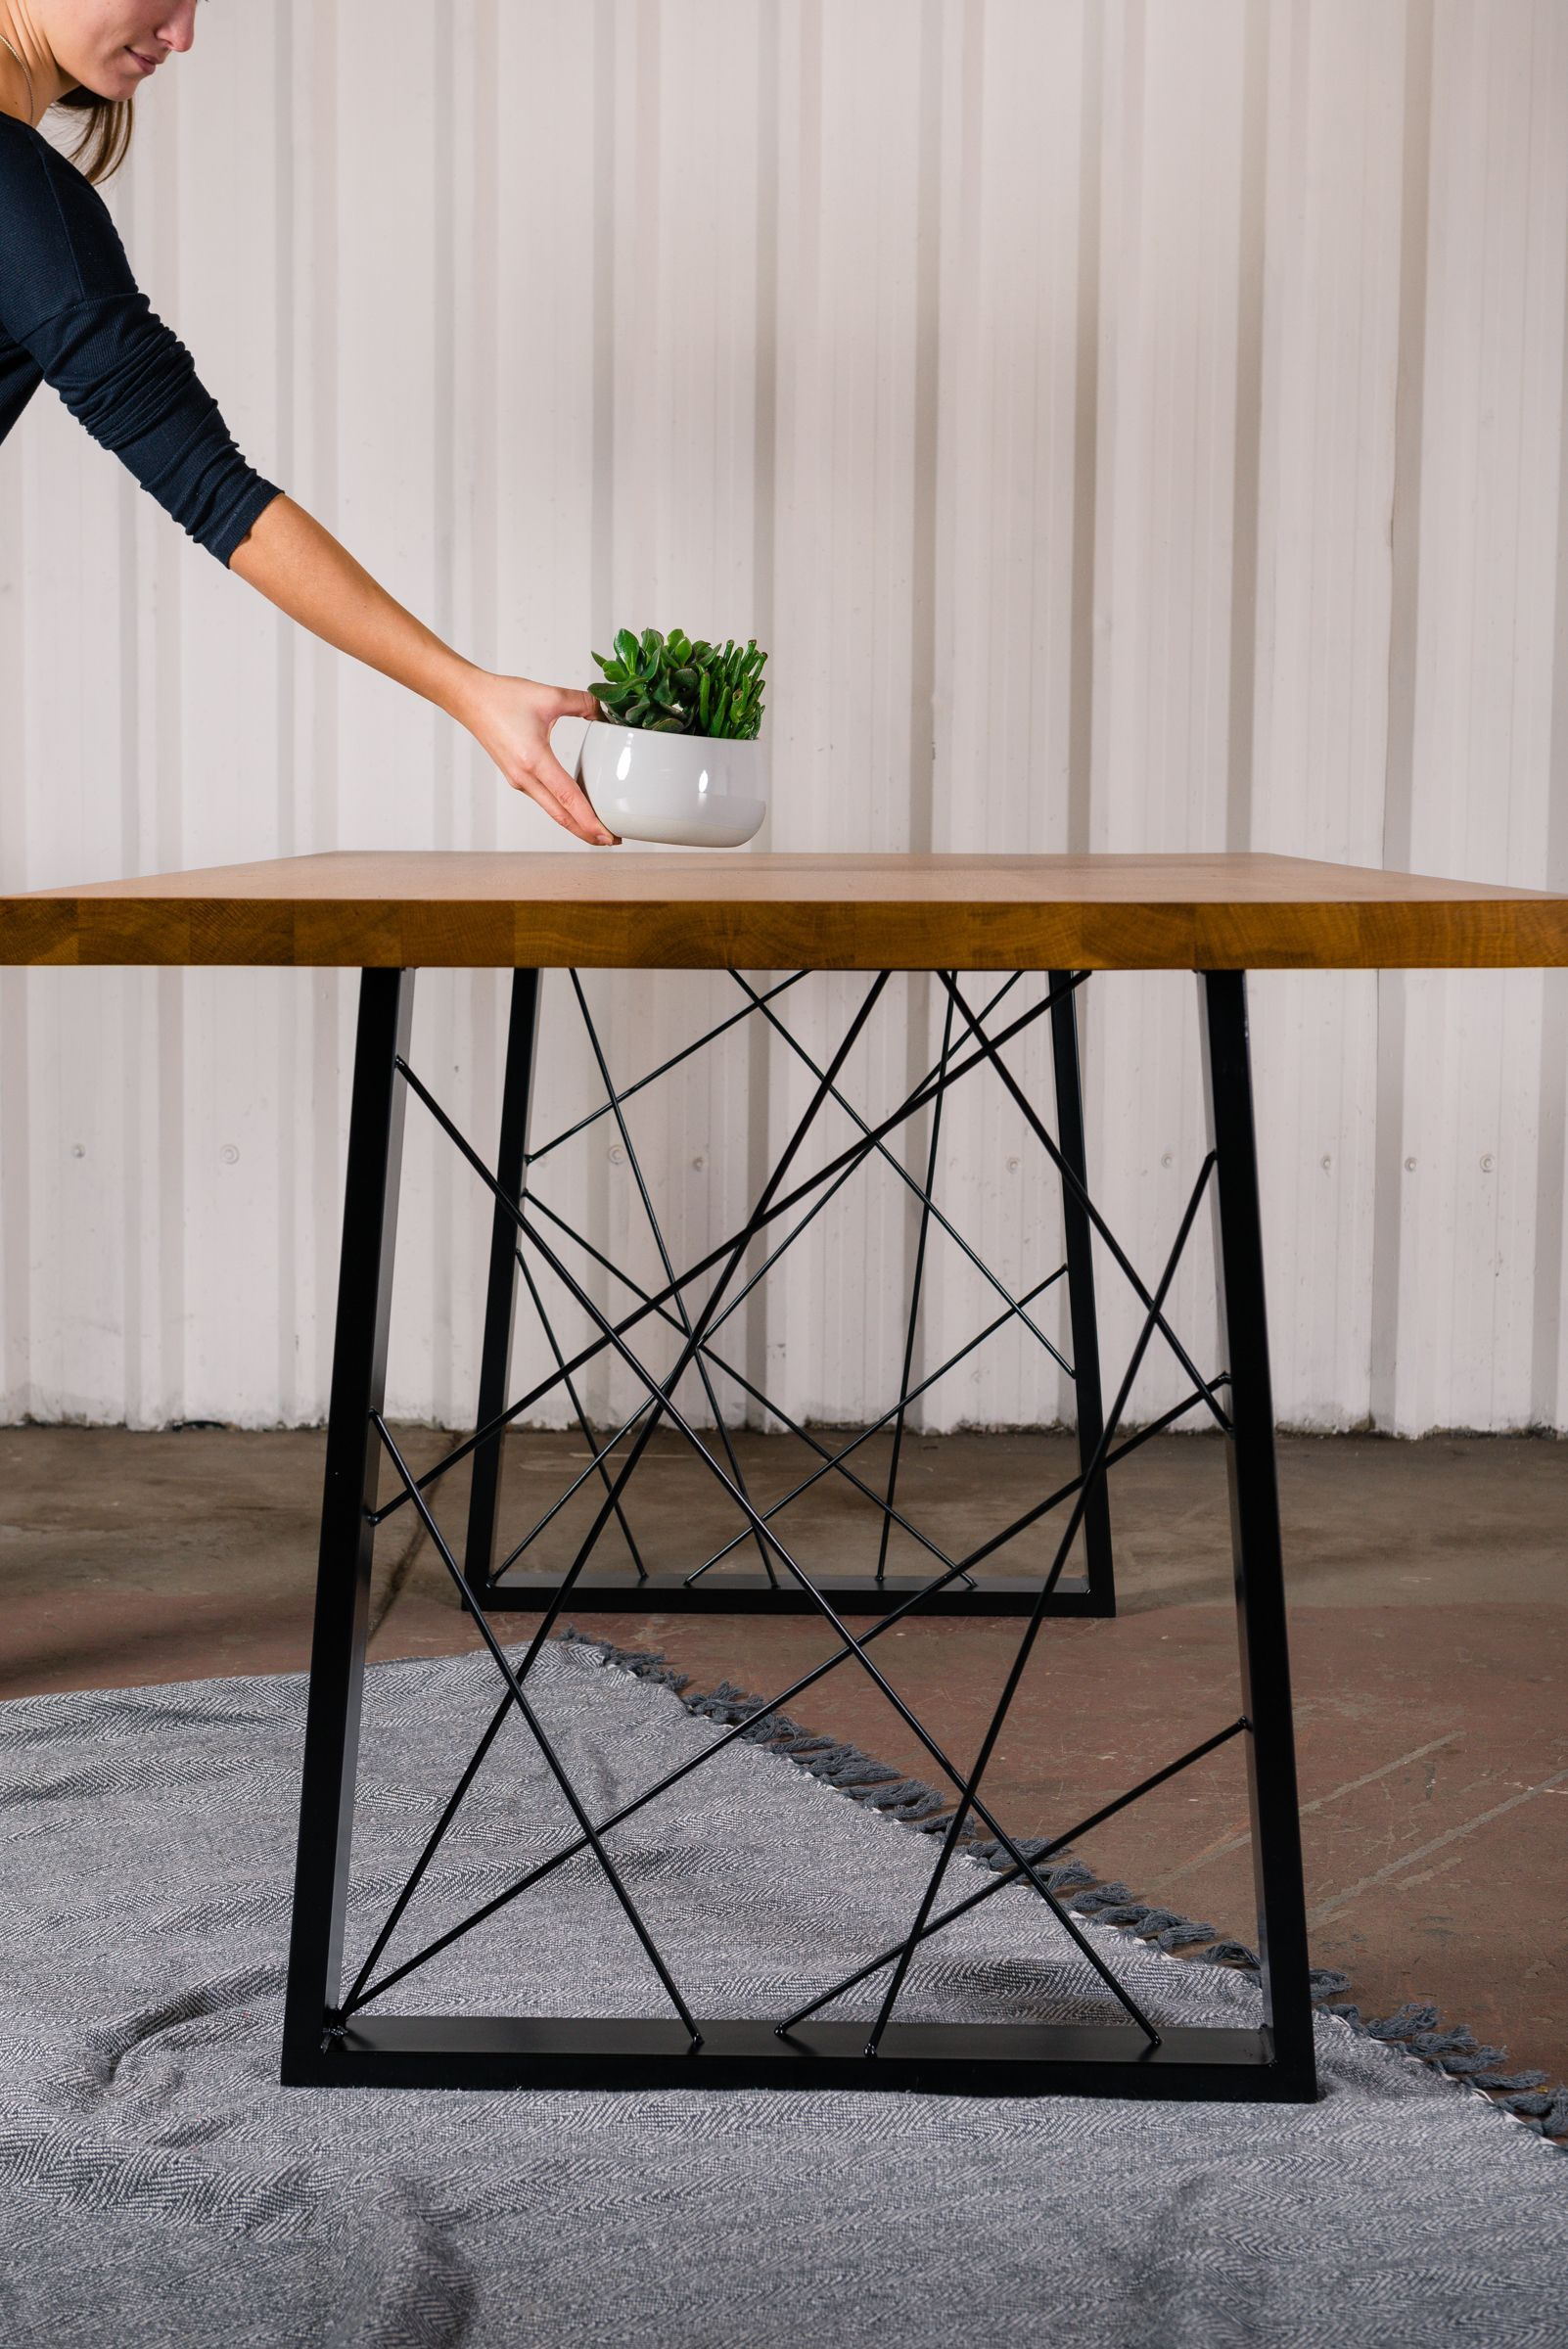 Create Your Own Dining Table With These Art Deco Geometric Table